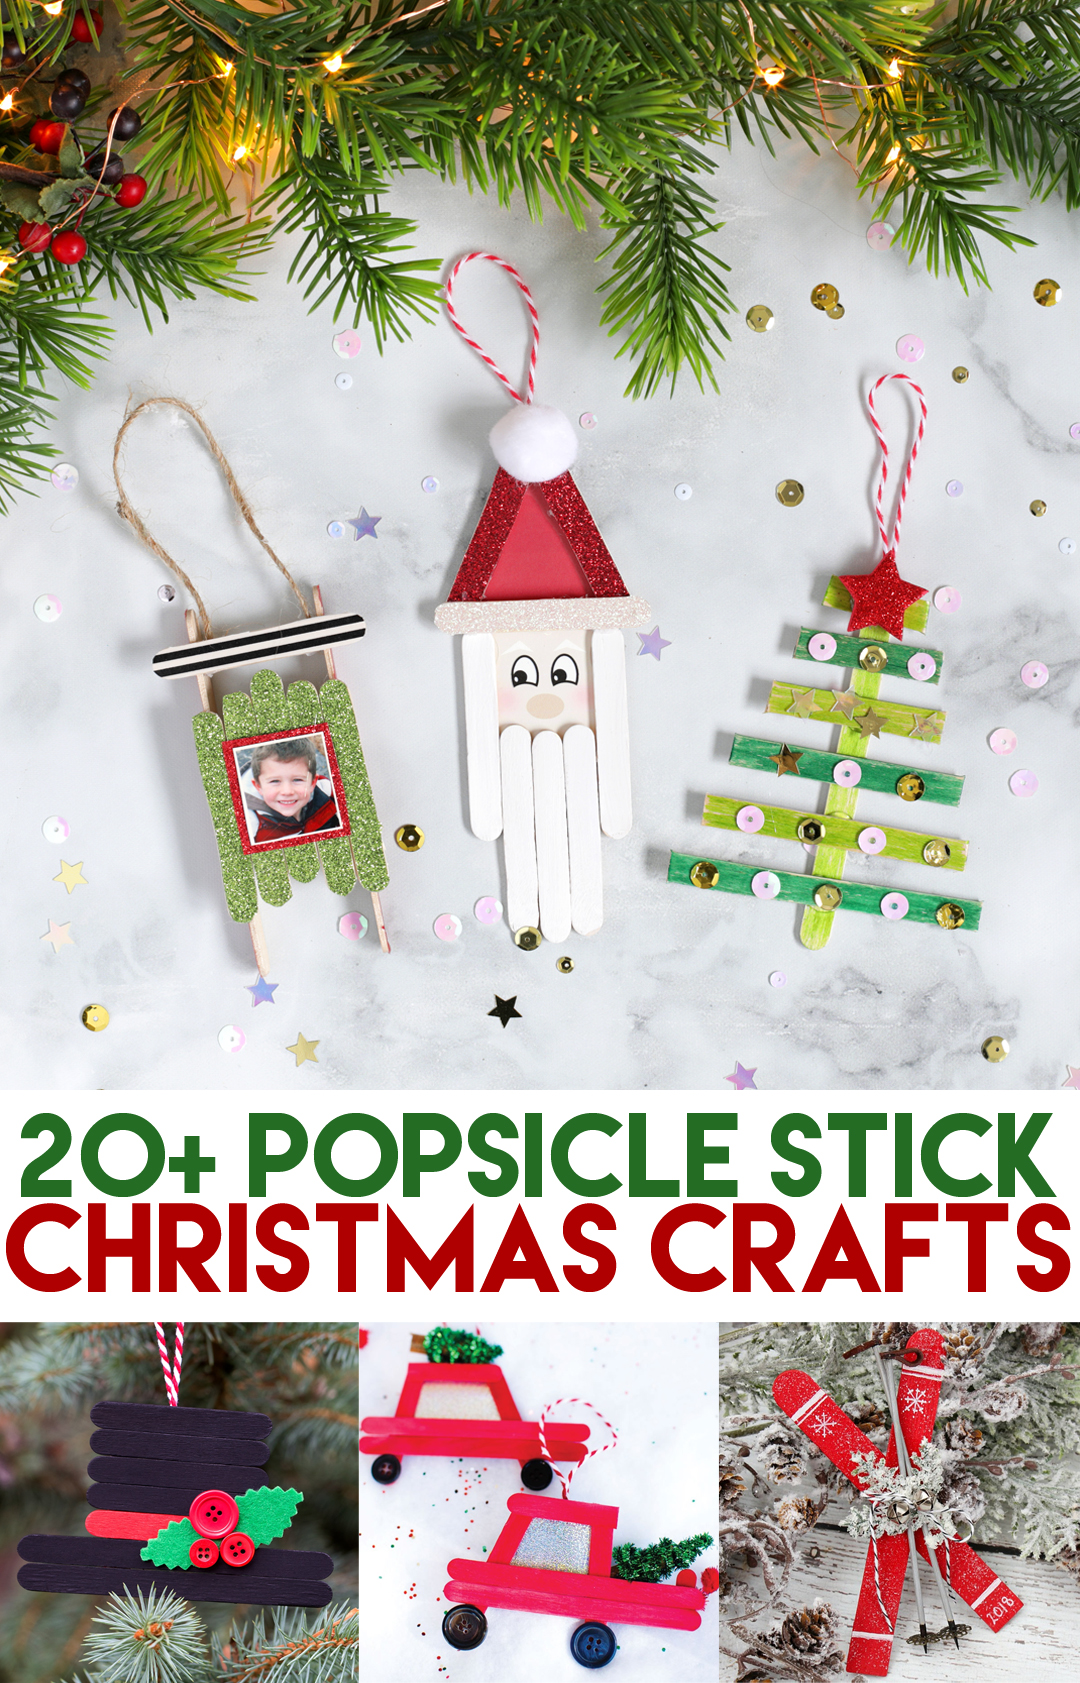 Popsicle Stick Christmas Crafts Thecraftpatchblog Com